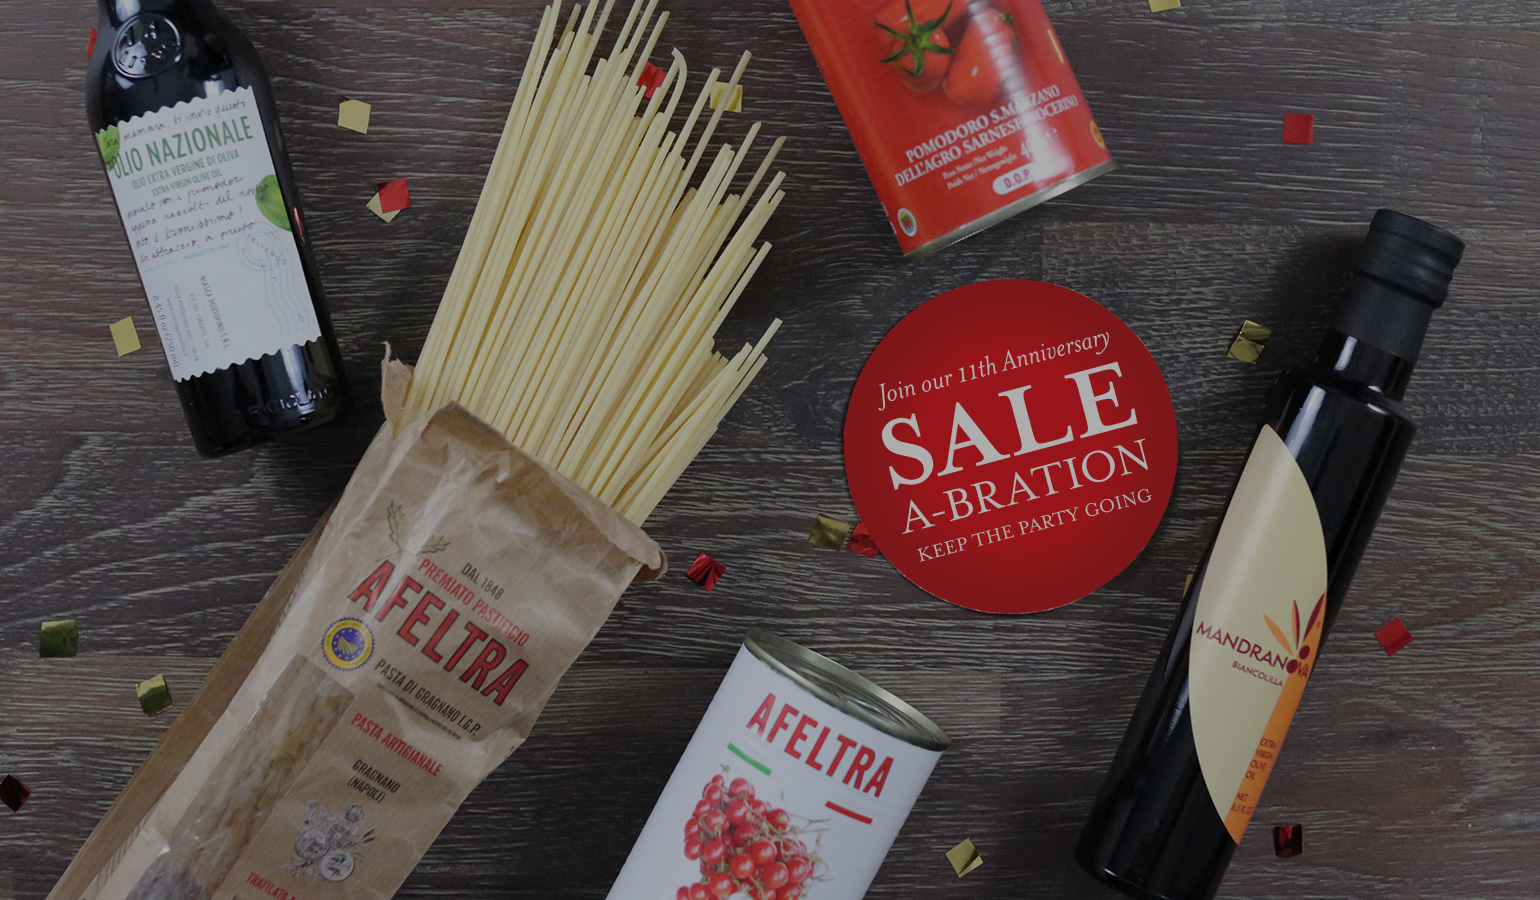 Eataly - Italian Food, Recipes and Gift Boxes | Eataly